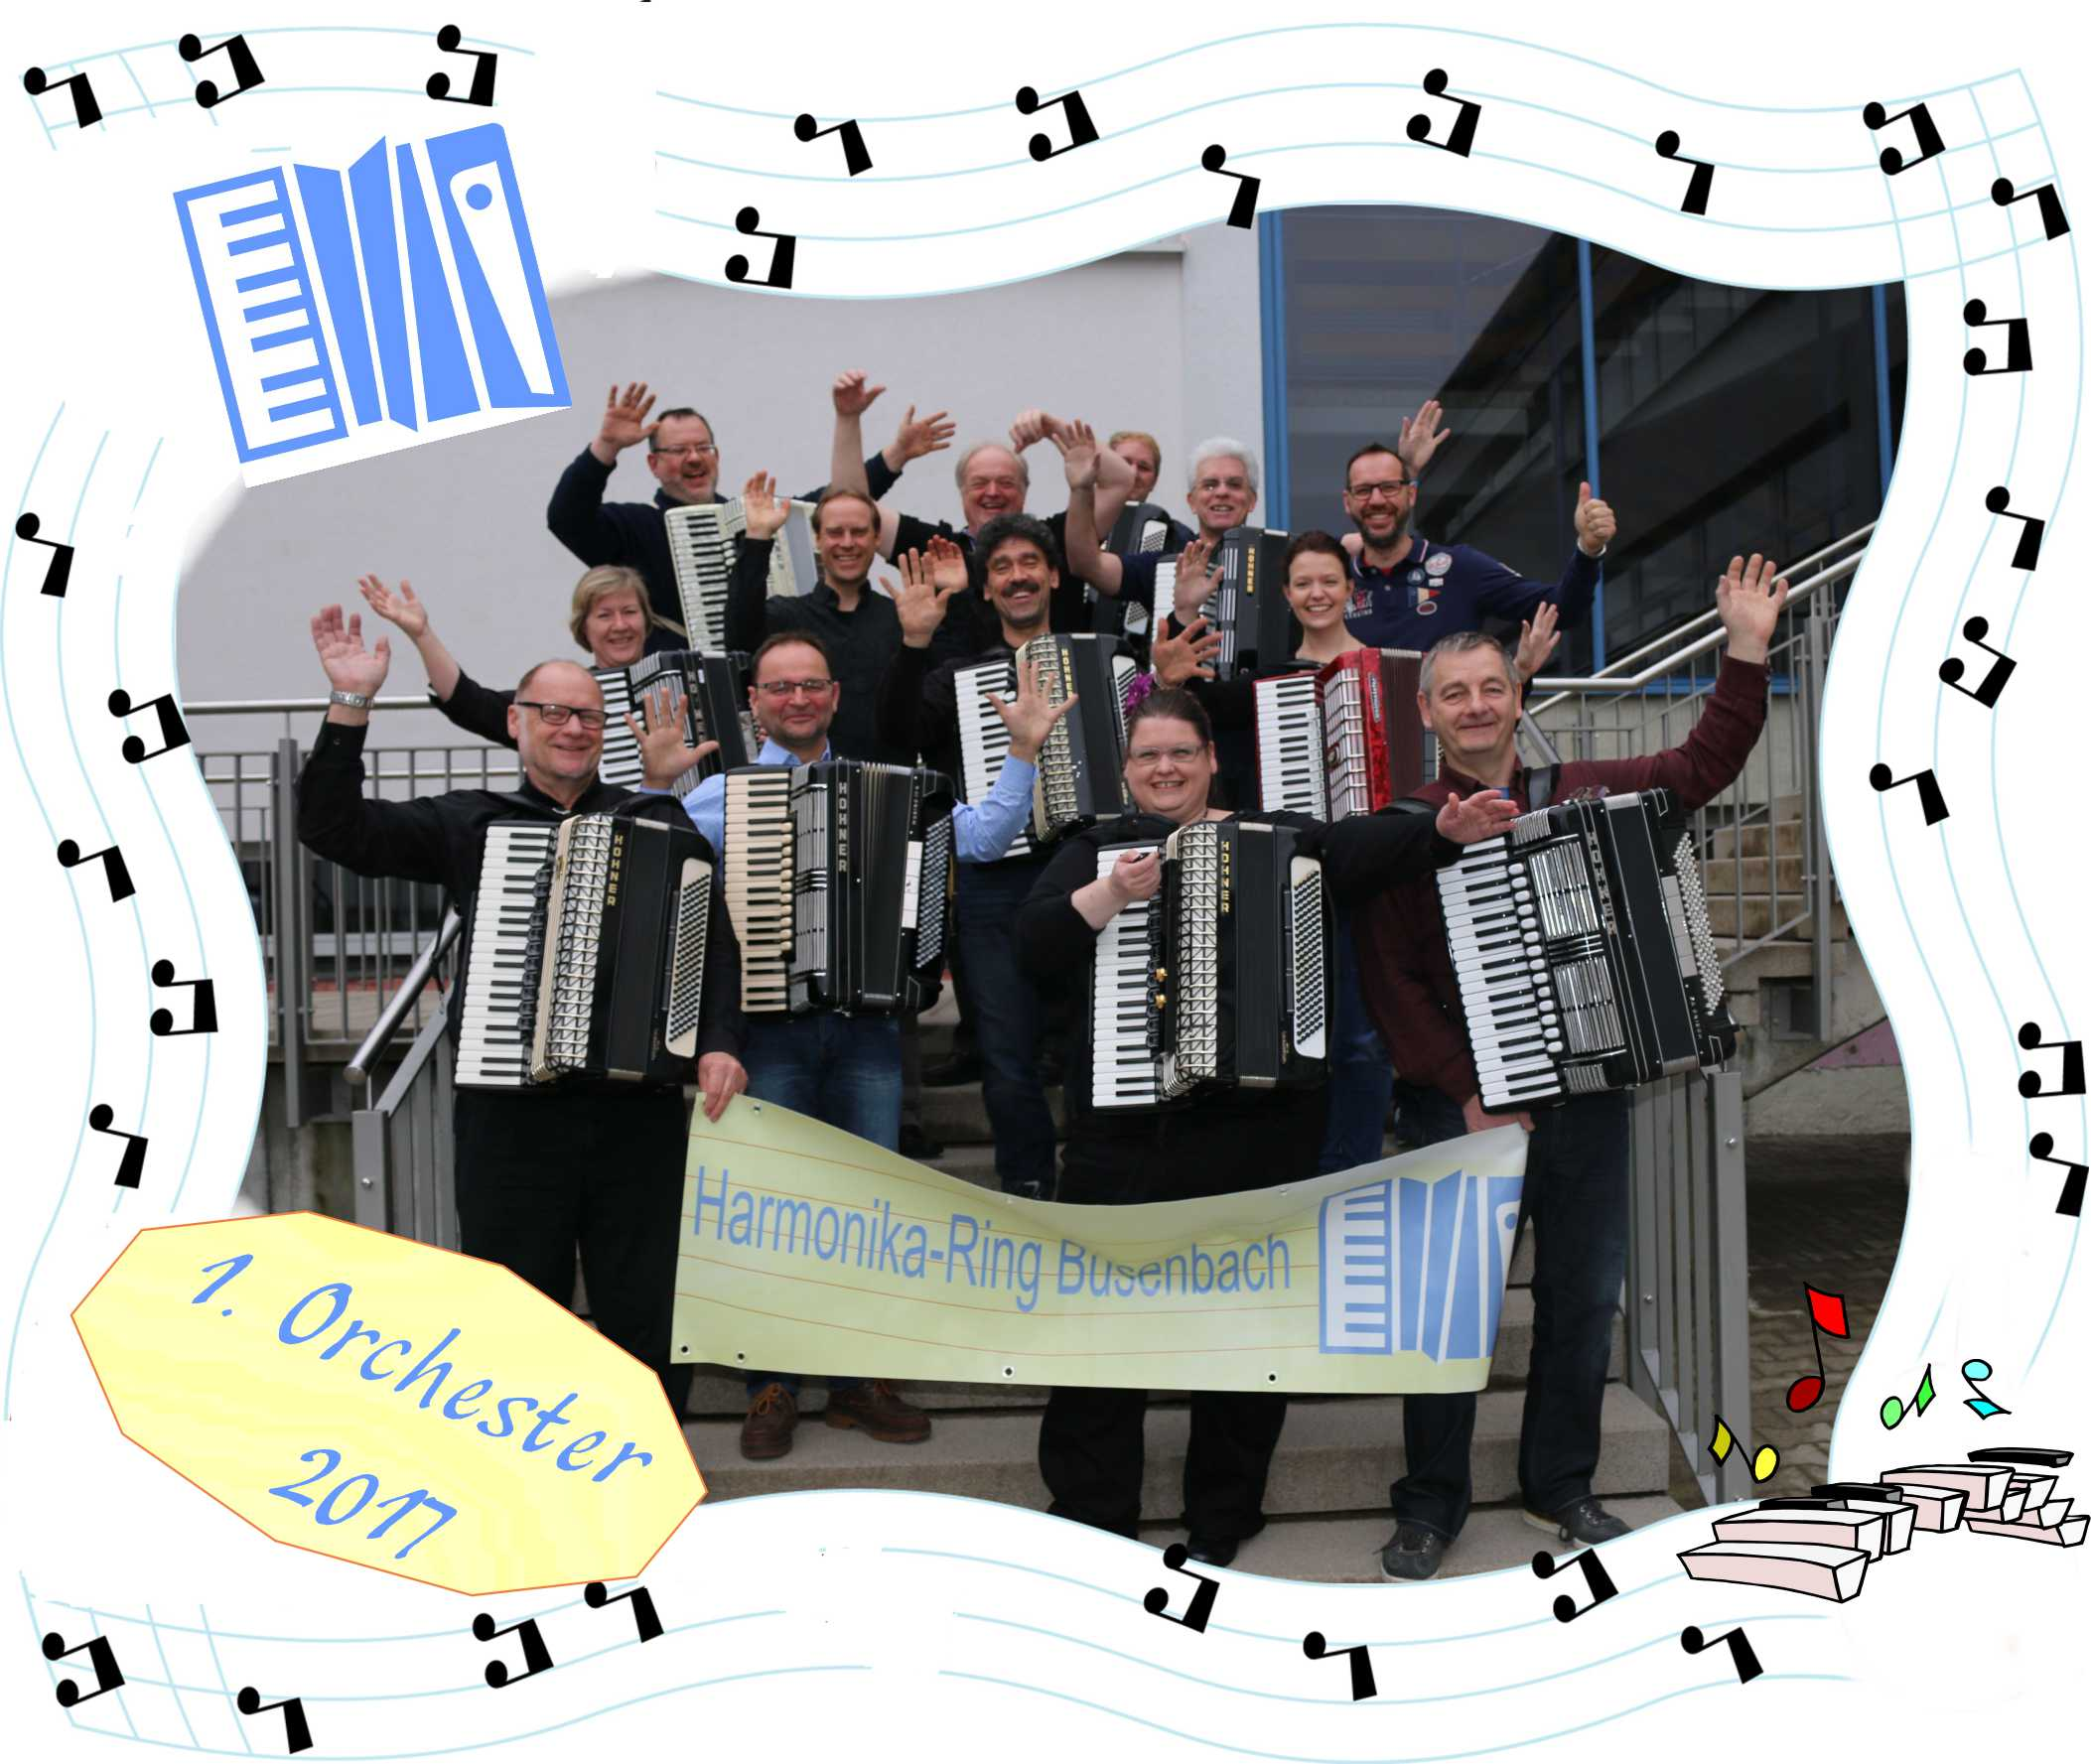 Unser 1. Orchester 2017